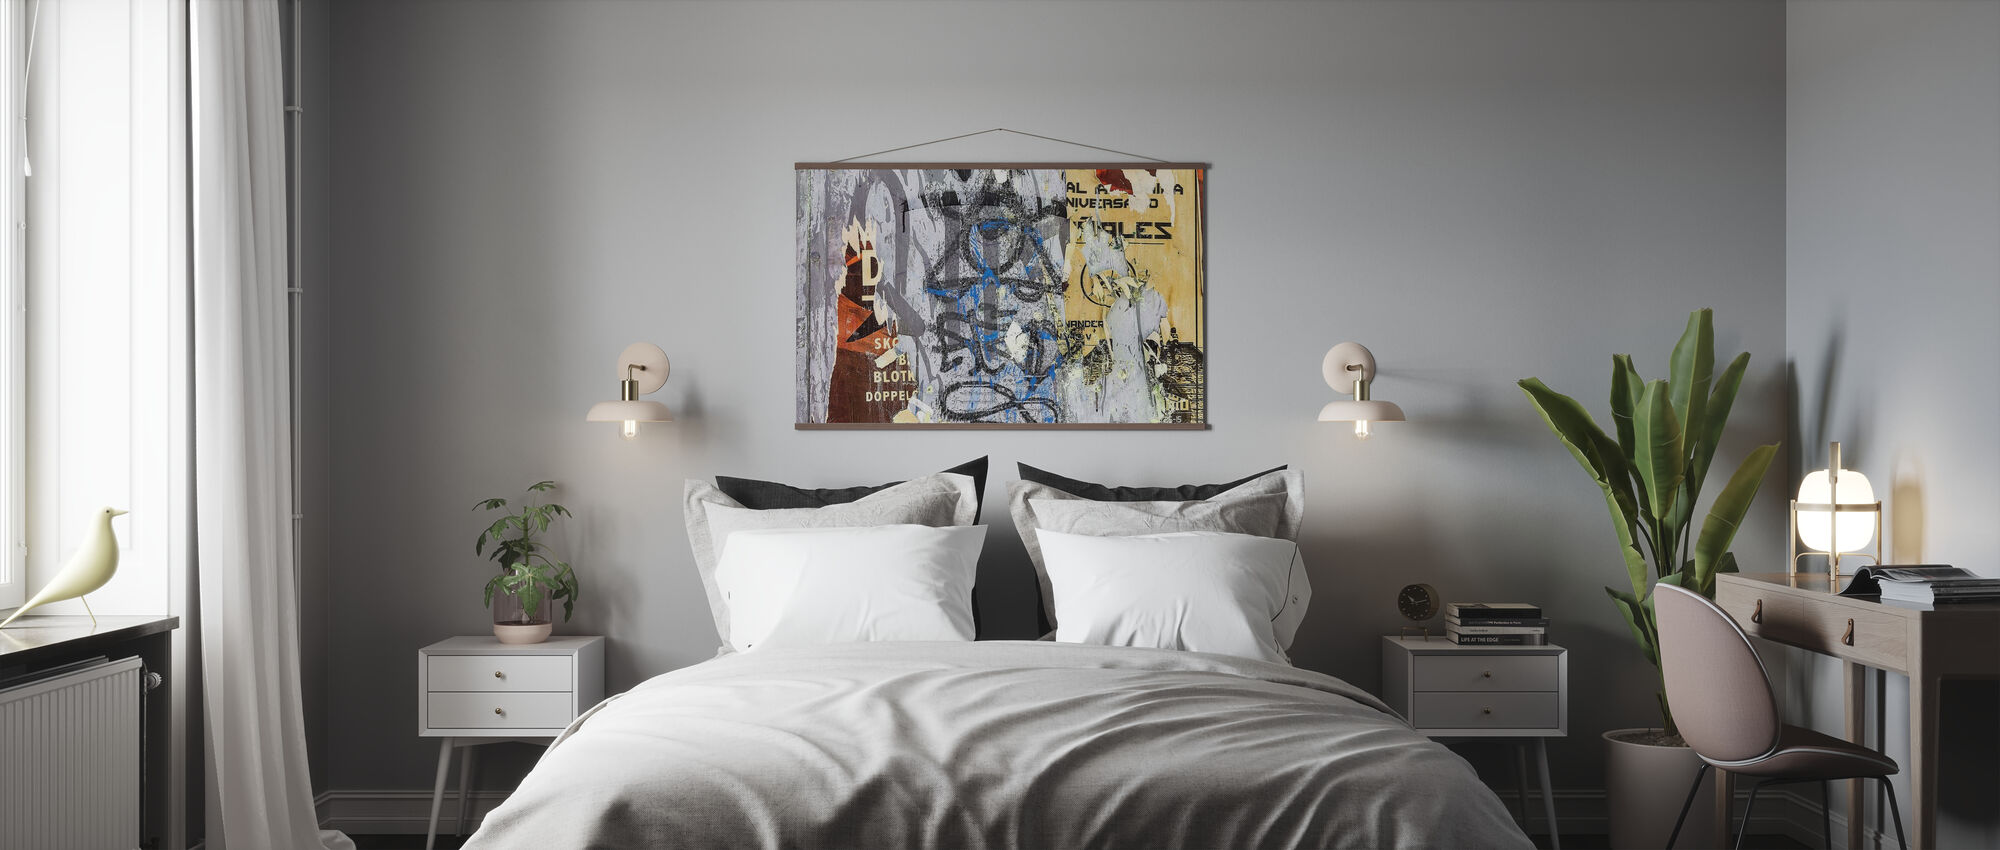 Torn Posters and Graffiti - Poster - Bedroom